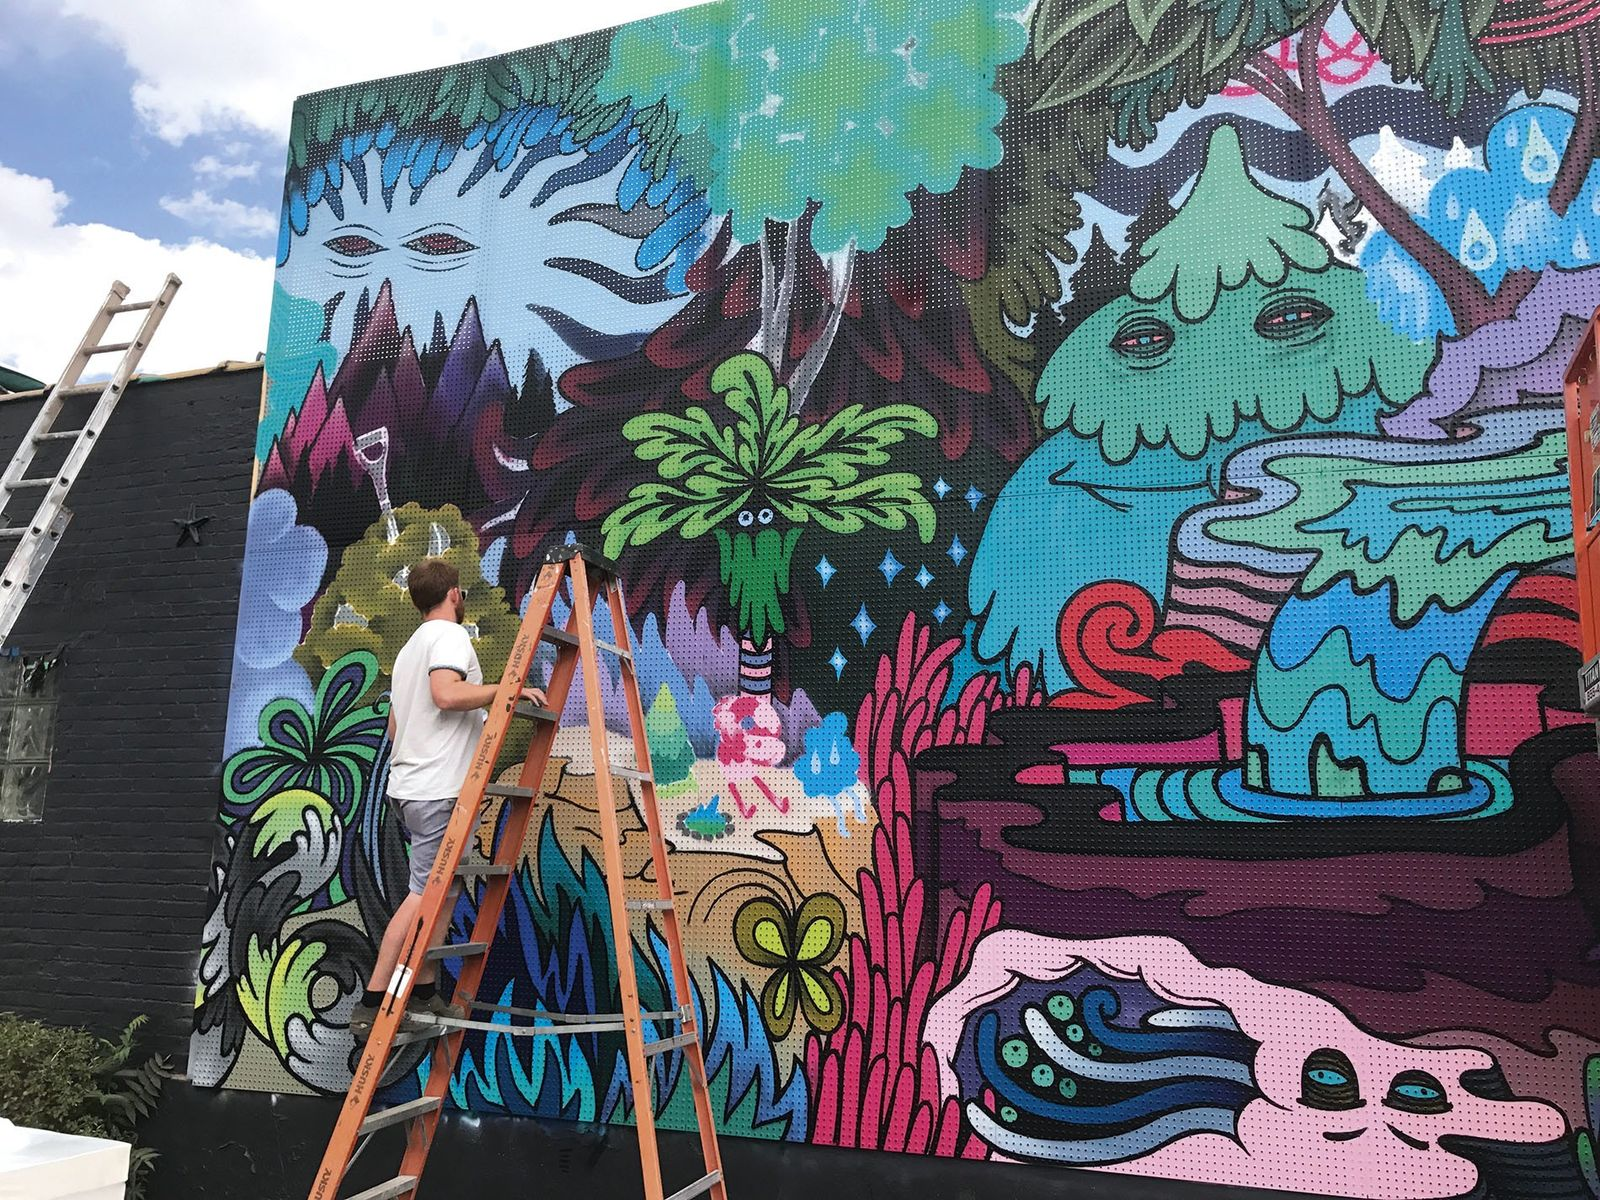 Artist Rather Severe working on a mural